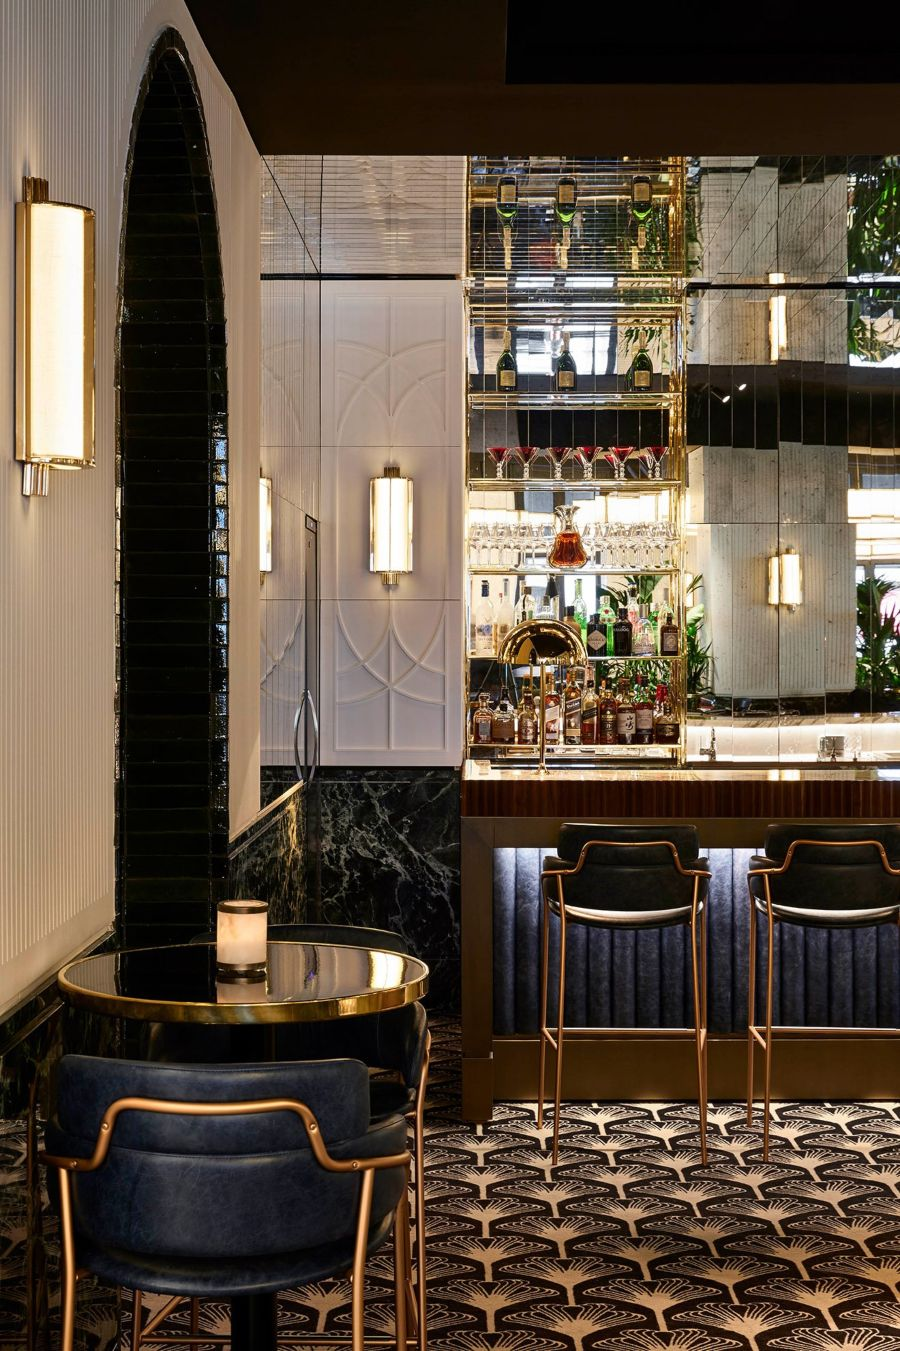 Humbert and Poyet and the Timeless Beefbar in Paris